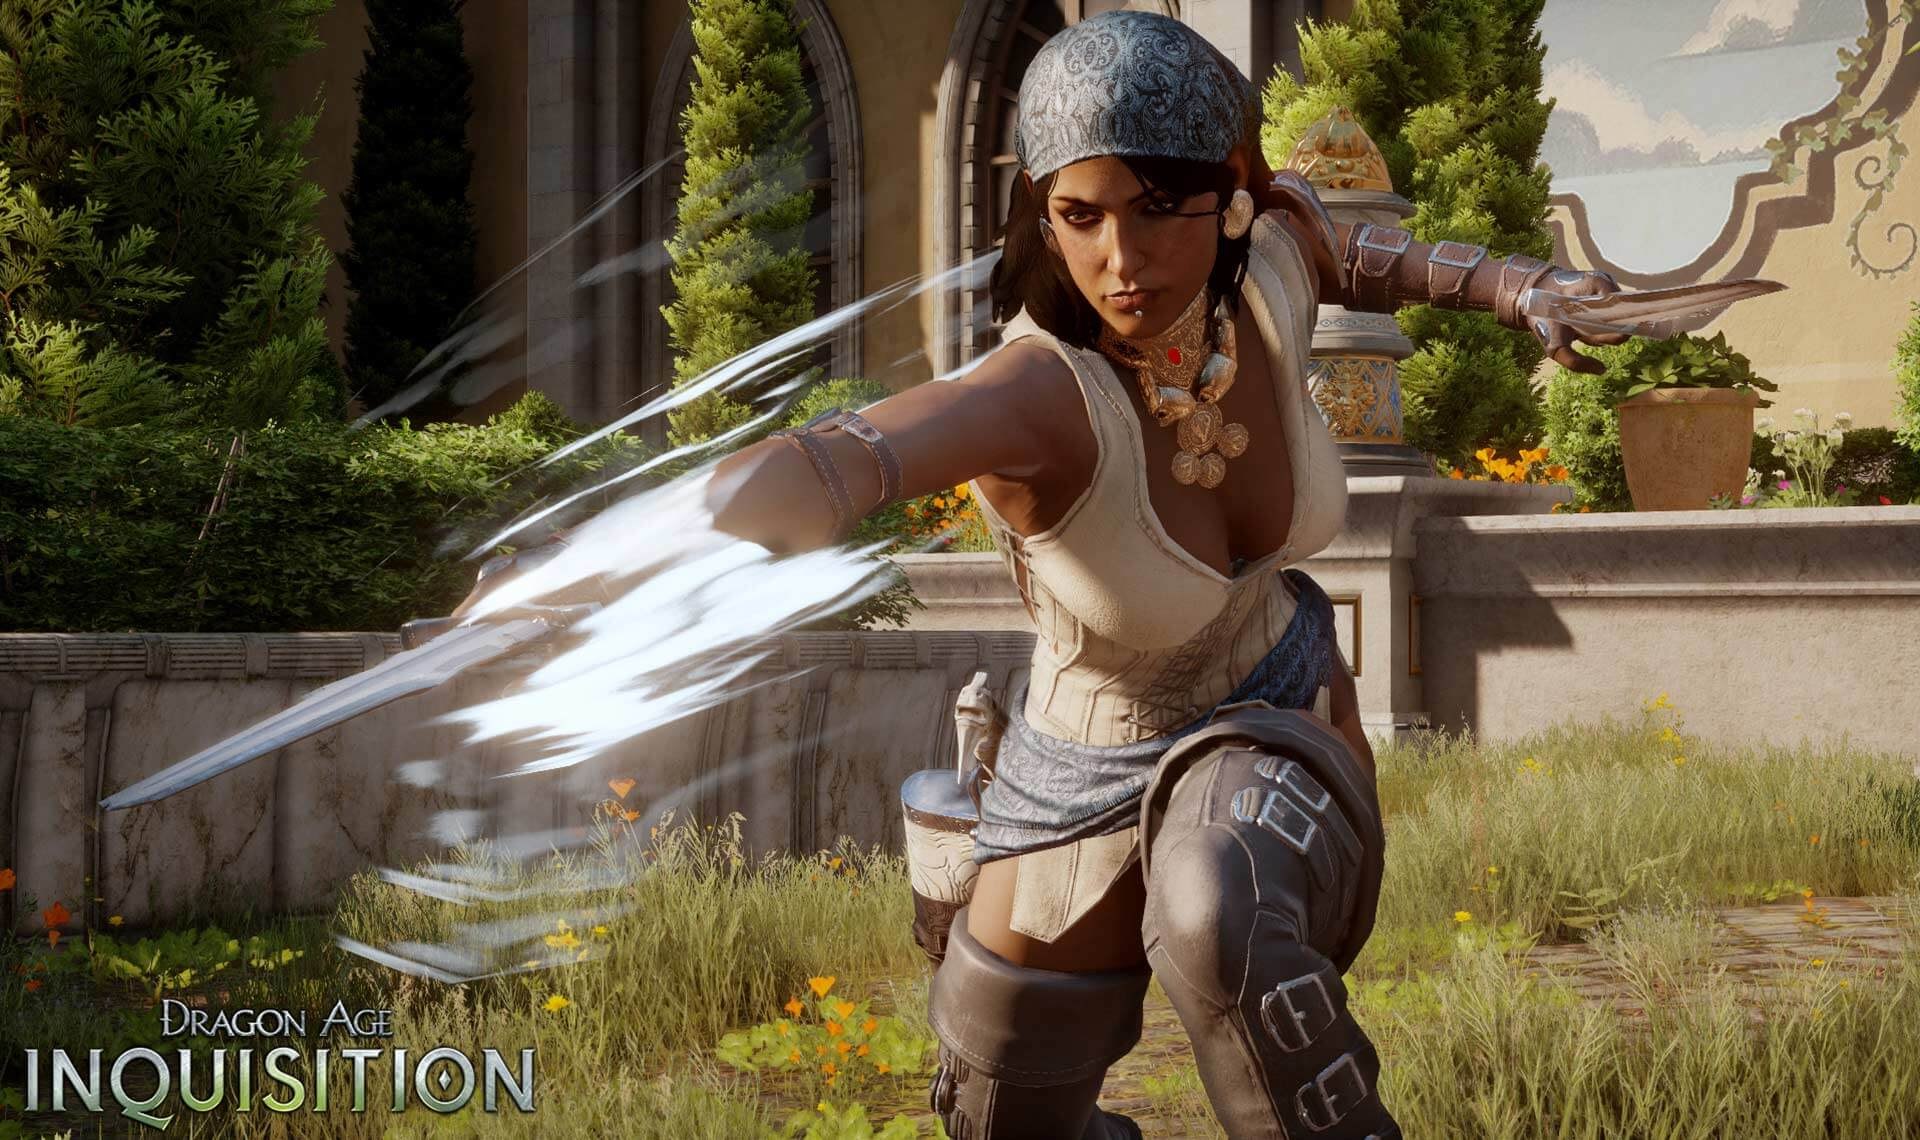 Isabela Dragon Age: Inquisition - Dragonslayer